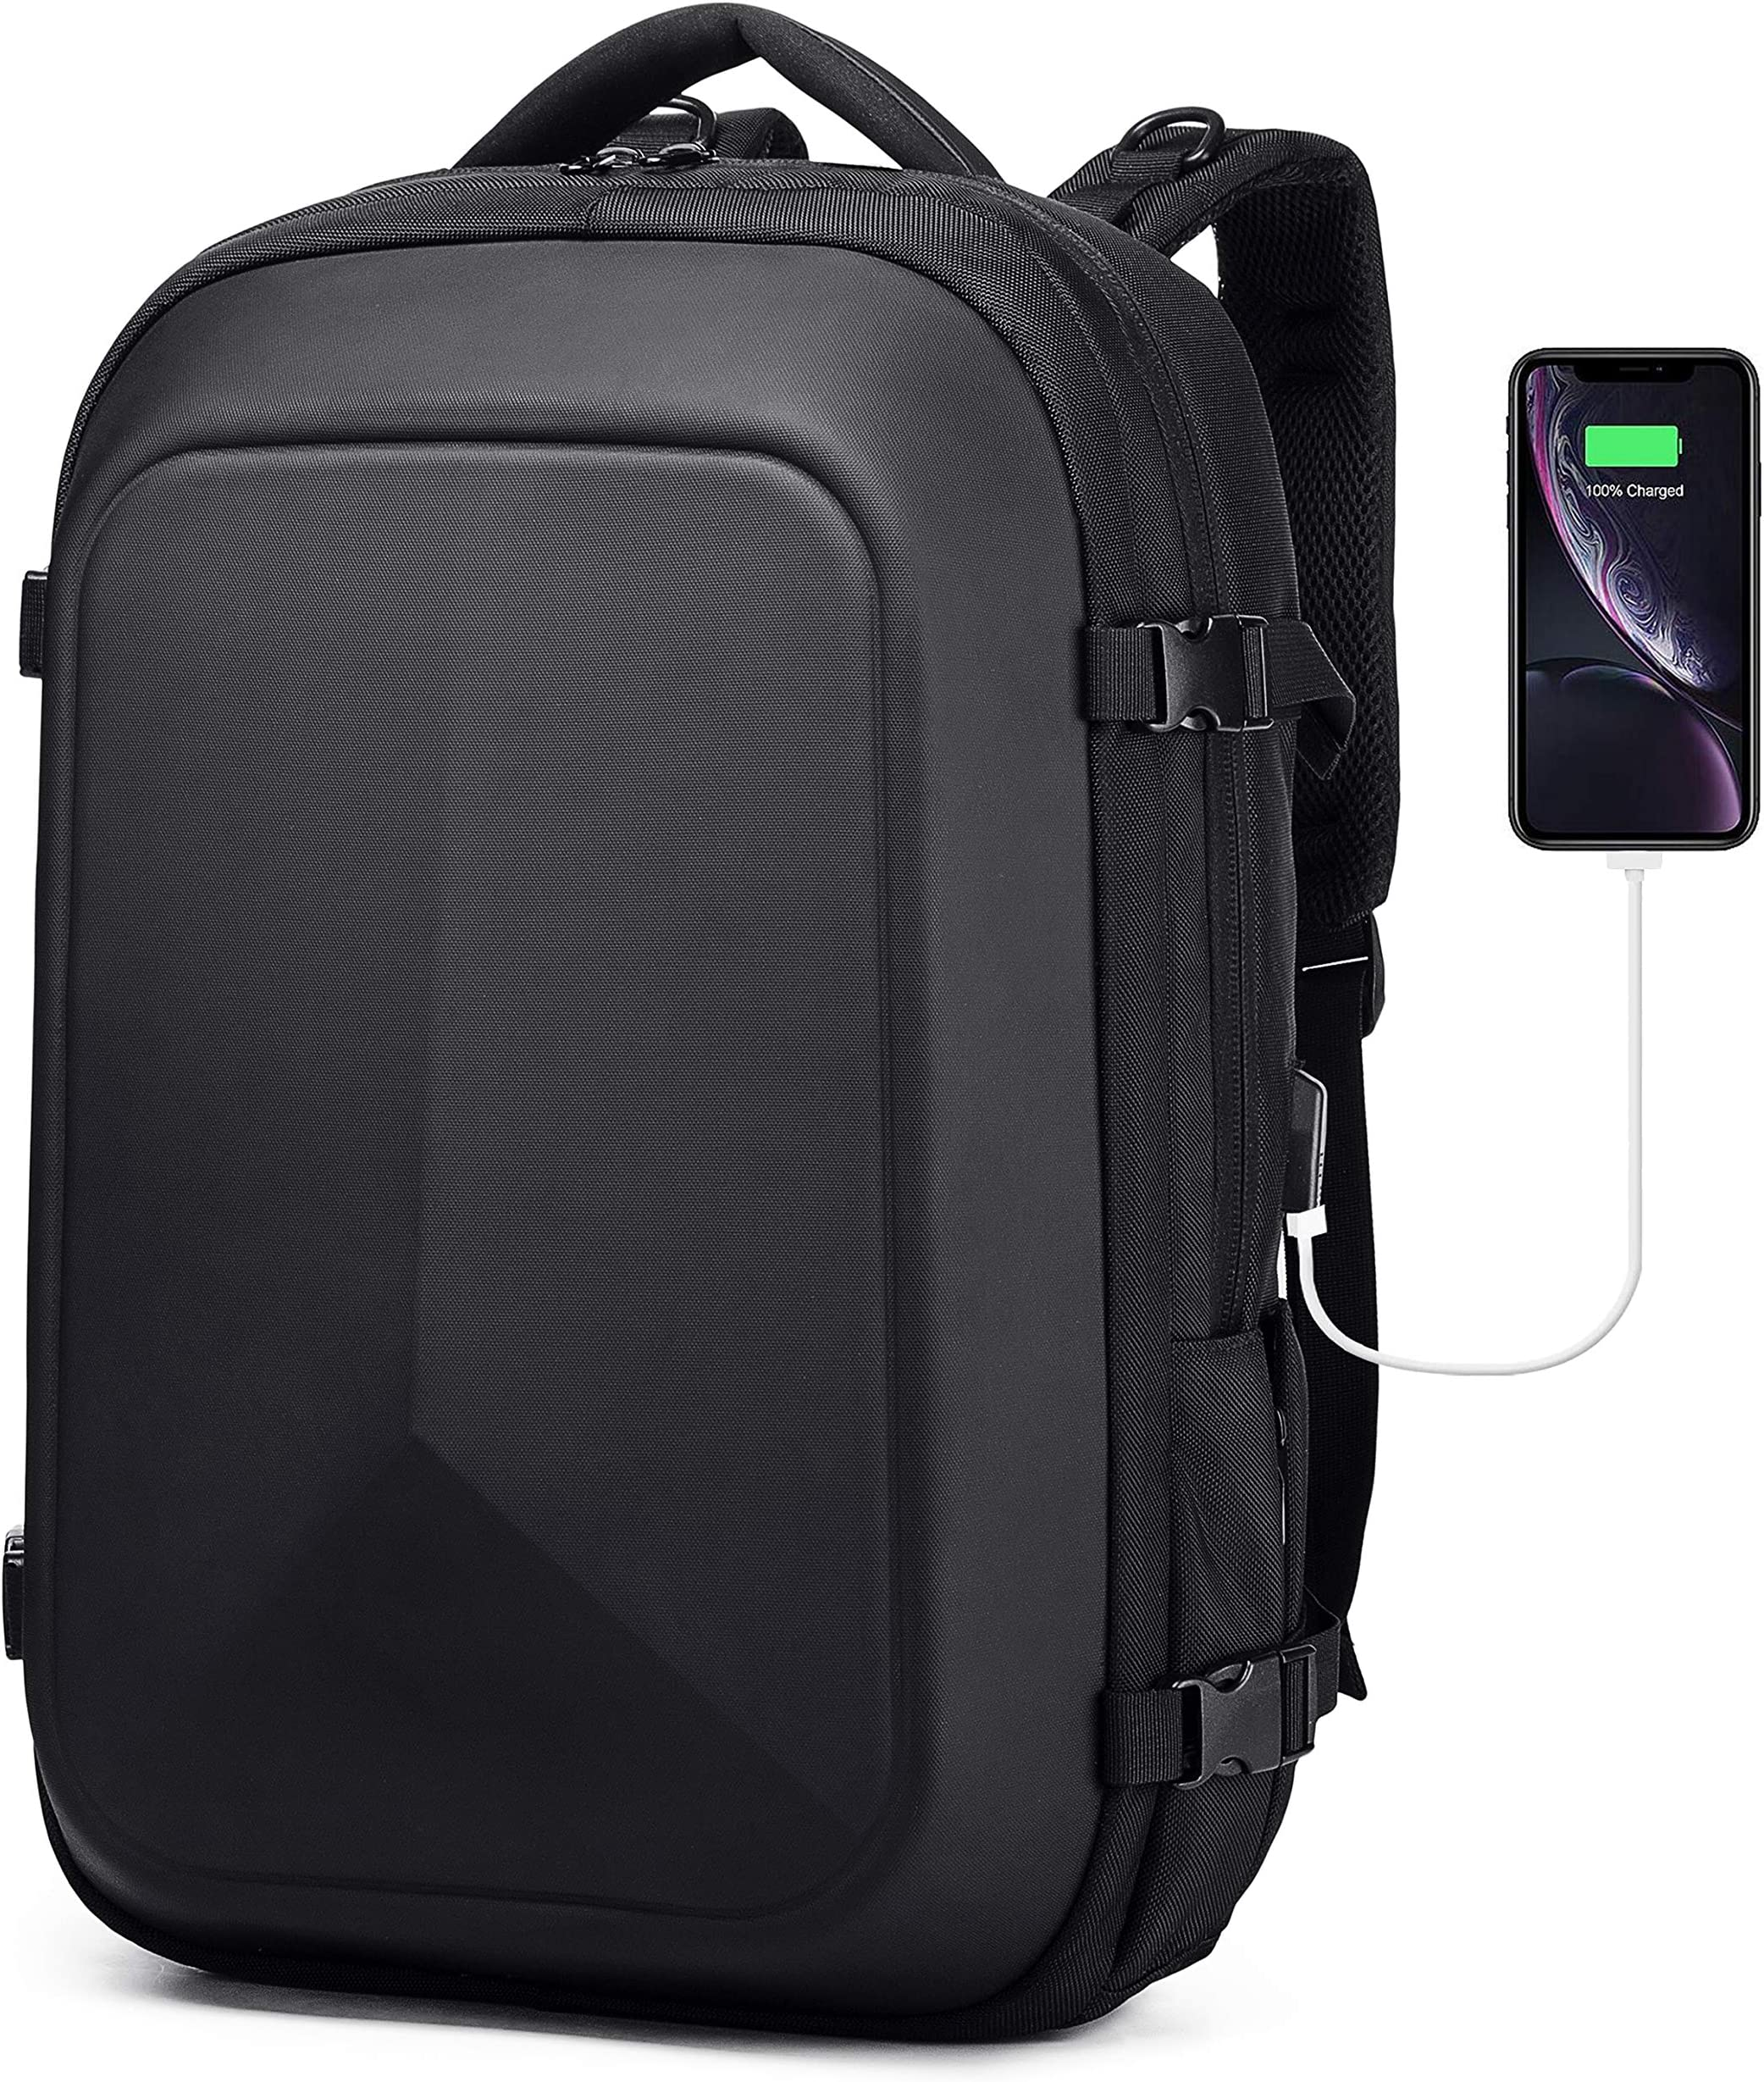 Careteilly Laptop Backpack For Men -Water-Proof Hard Shell Backpack For Travel,Camping,Riding,Cycling-Large shockproof Laptop Backpacks Fit for 17 inch with USB charging port